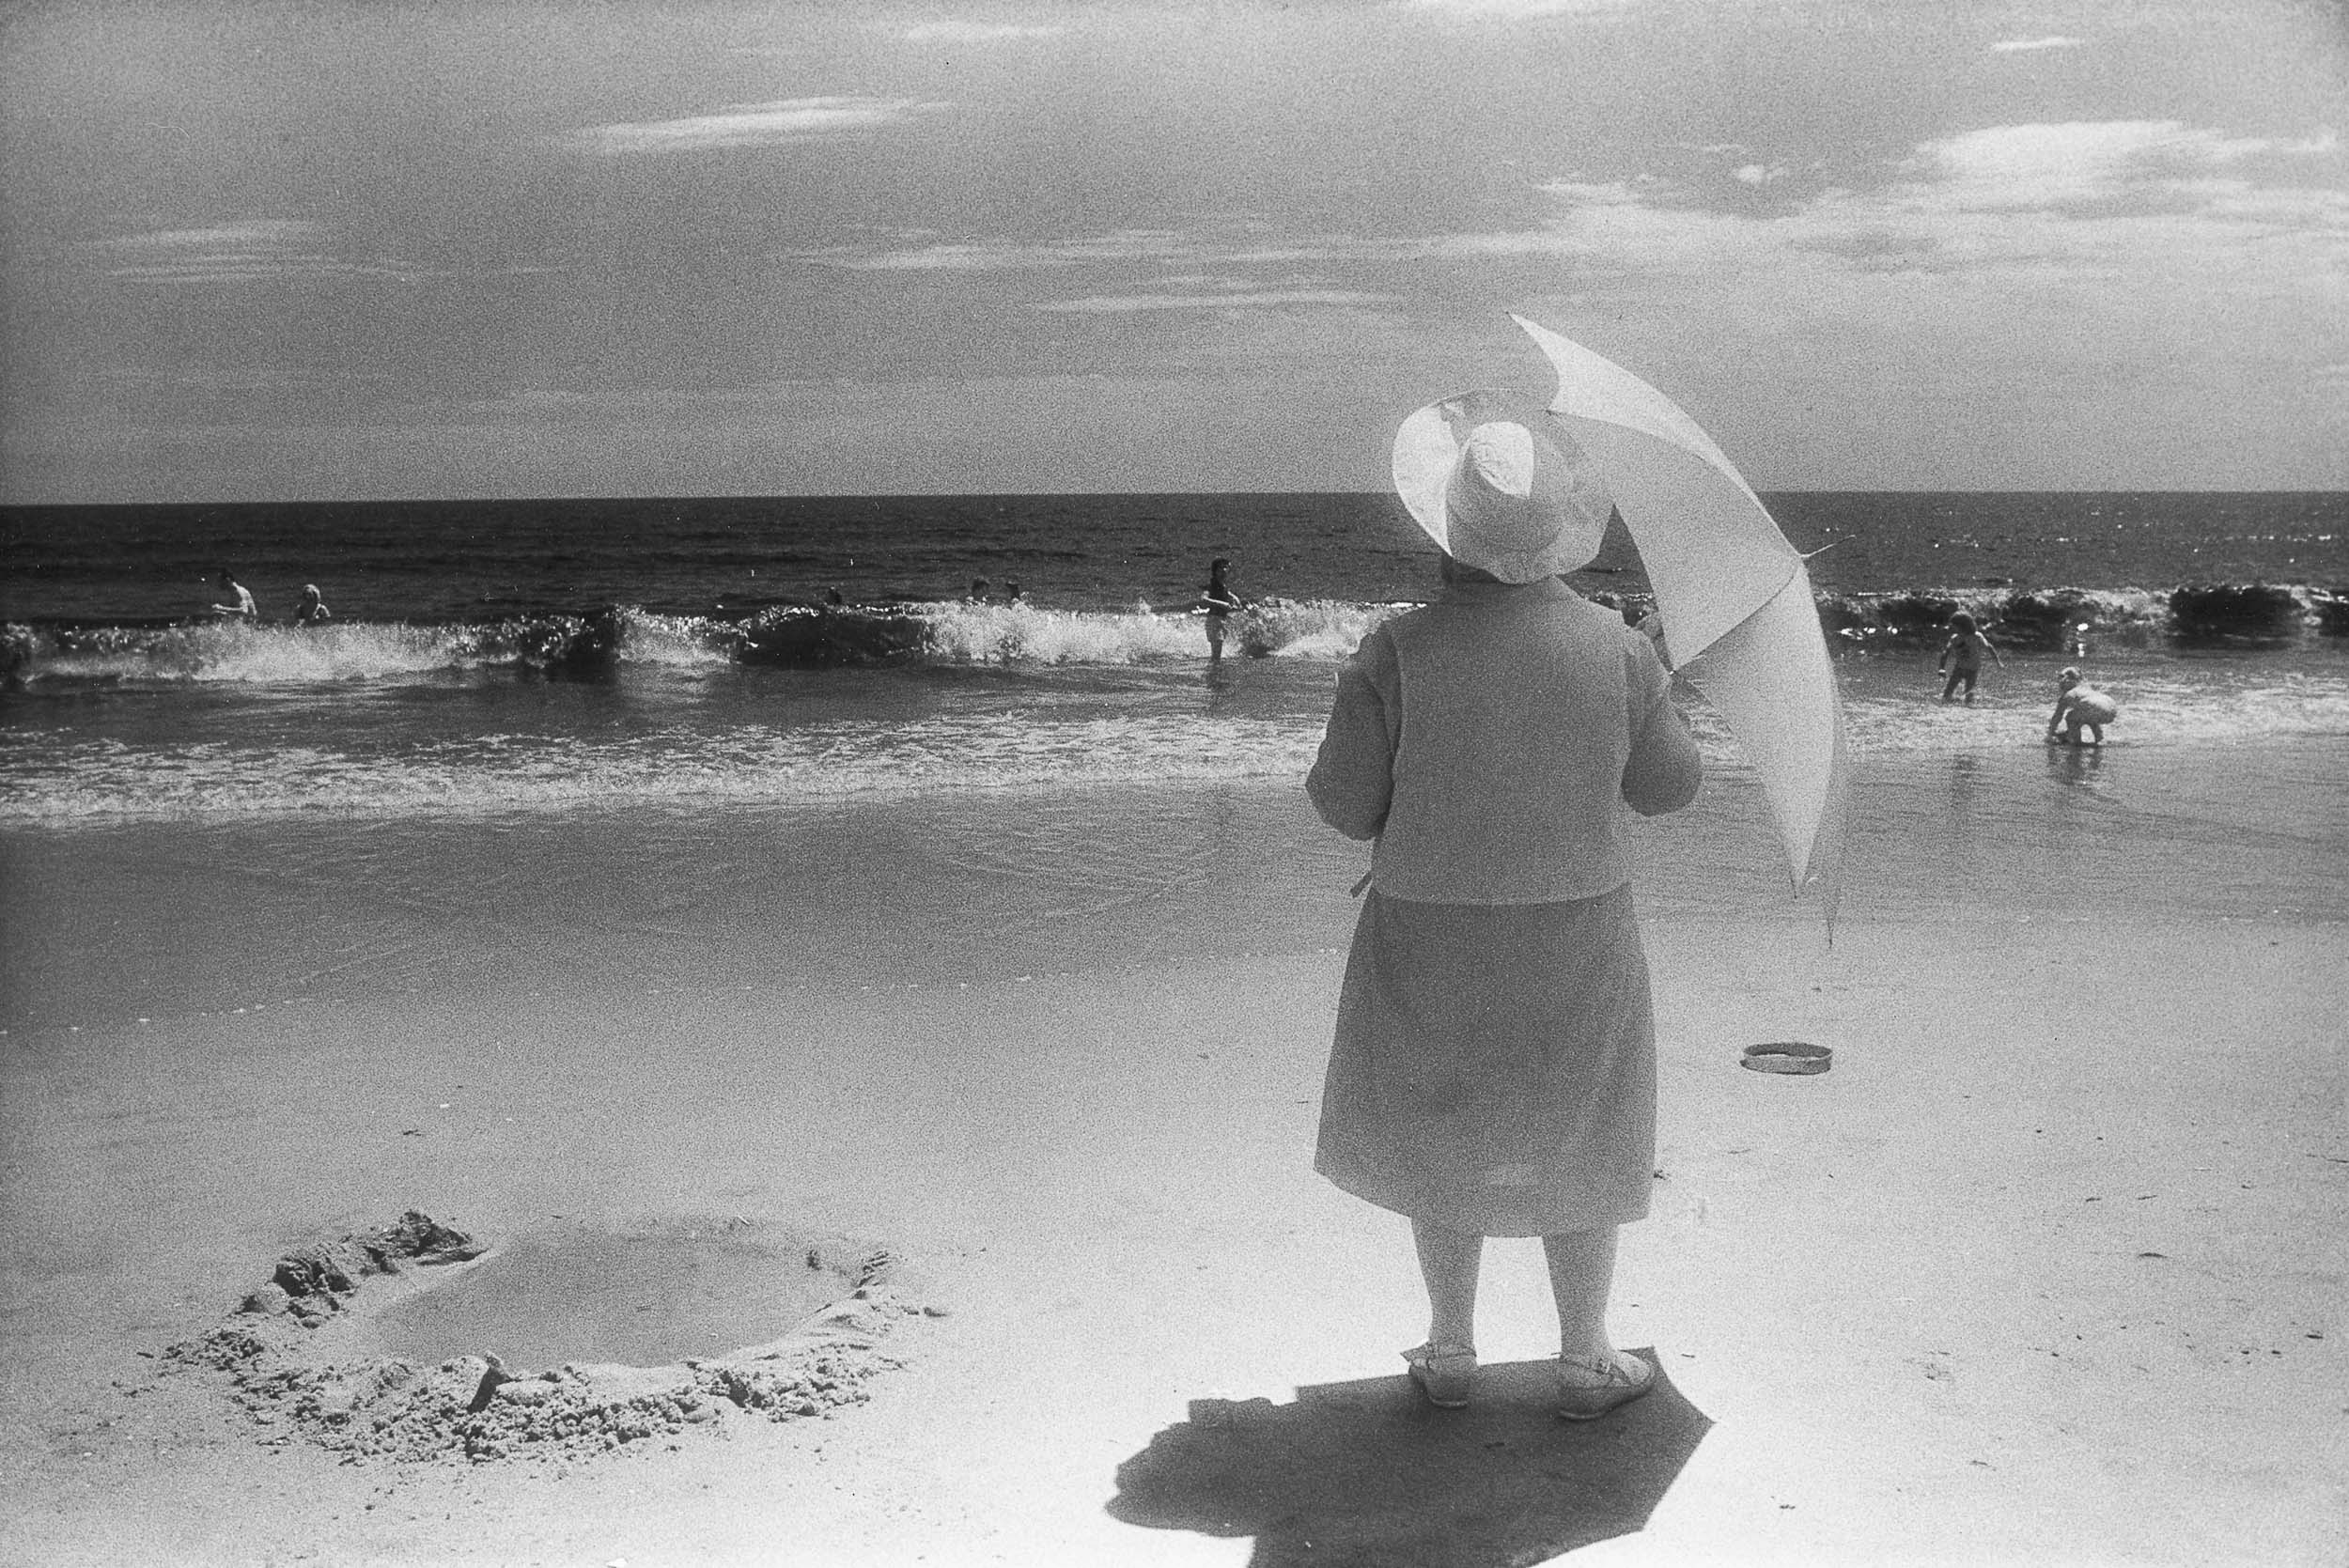 Barbara Alper- Photo of women holding an umbrella while watching the waves at Rockaway Beach NYC